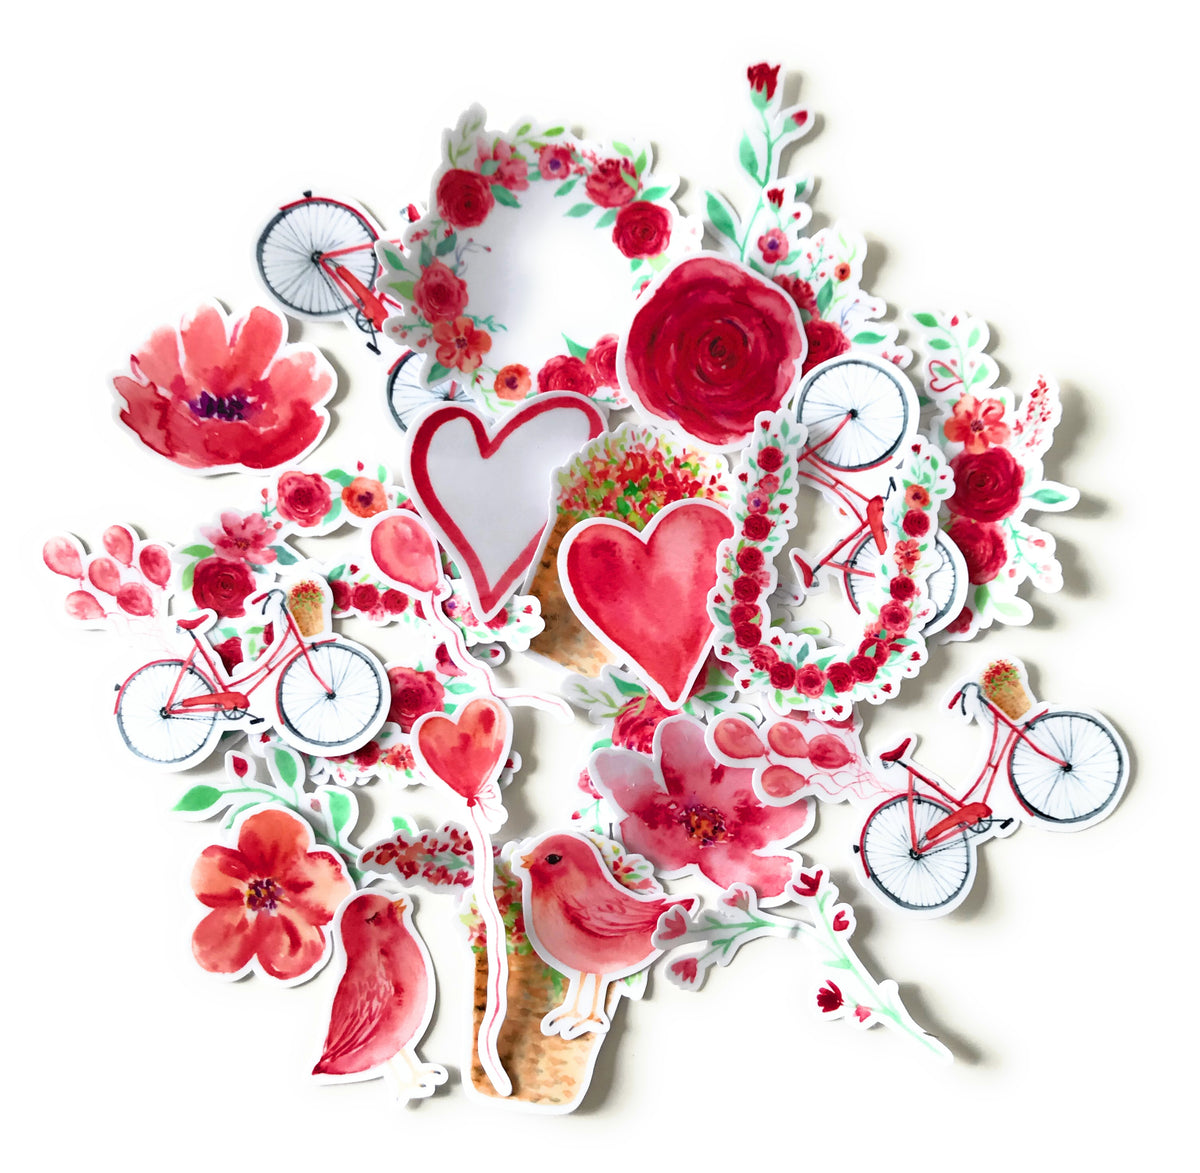 Red Heart And Rose Valentine Stickers For Your Wedding Scrapbook And